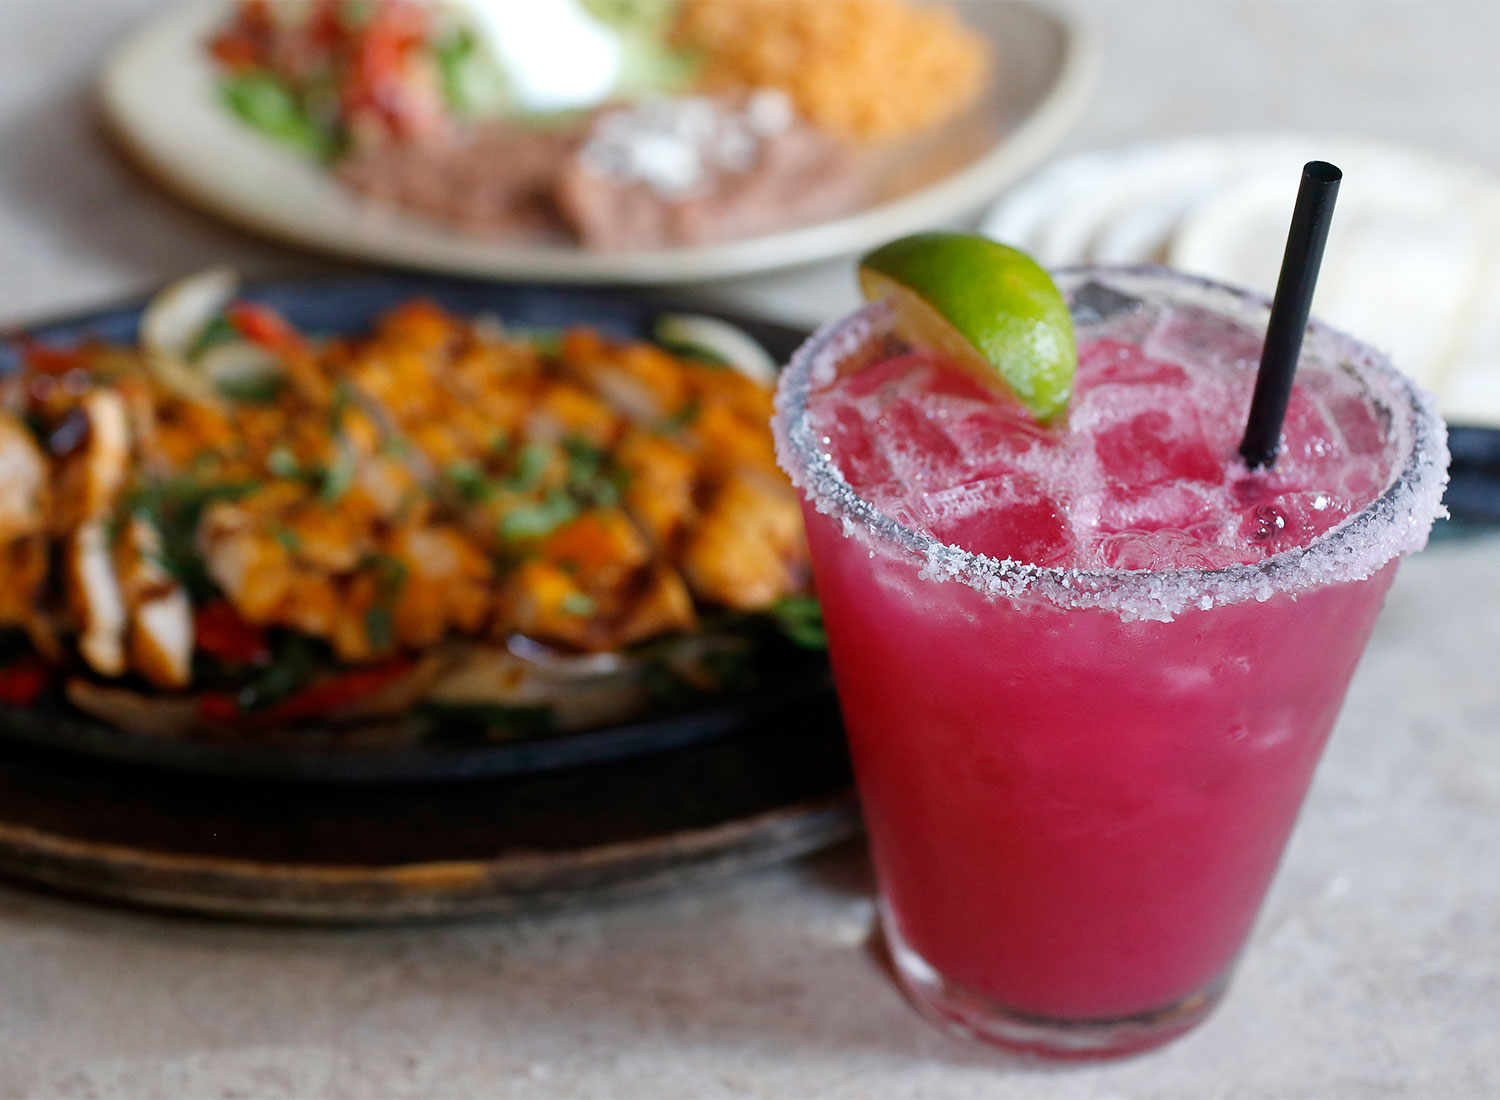 Prickly Pear margarita at La Rosa Tequileria in Santa Rosa (Beth Schlanker)